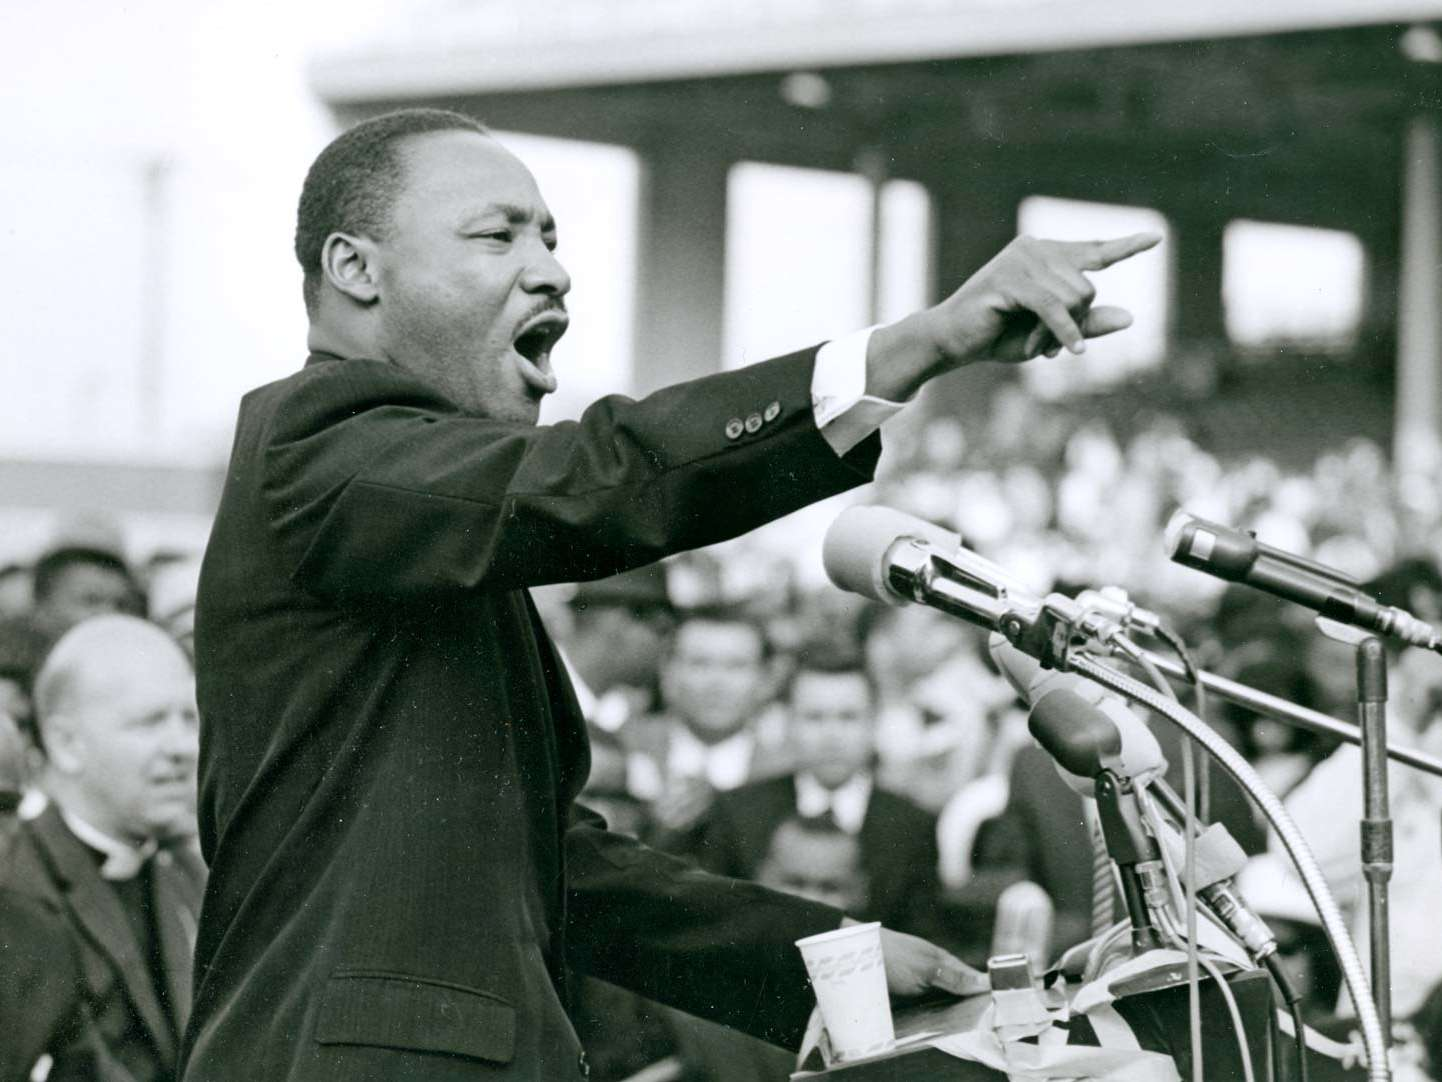 Honoring MLK Day: Dr. Martin Luther King Jr.